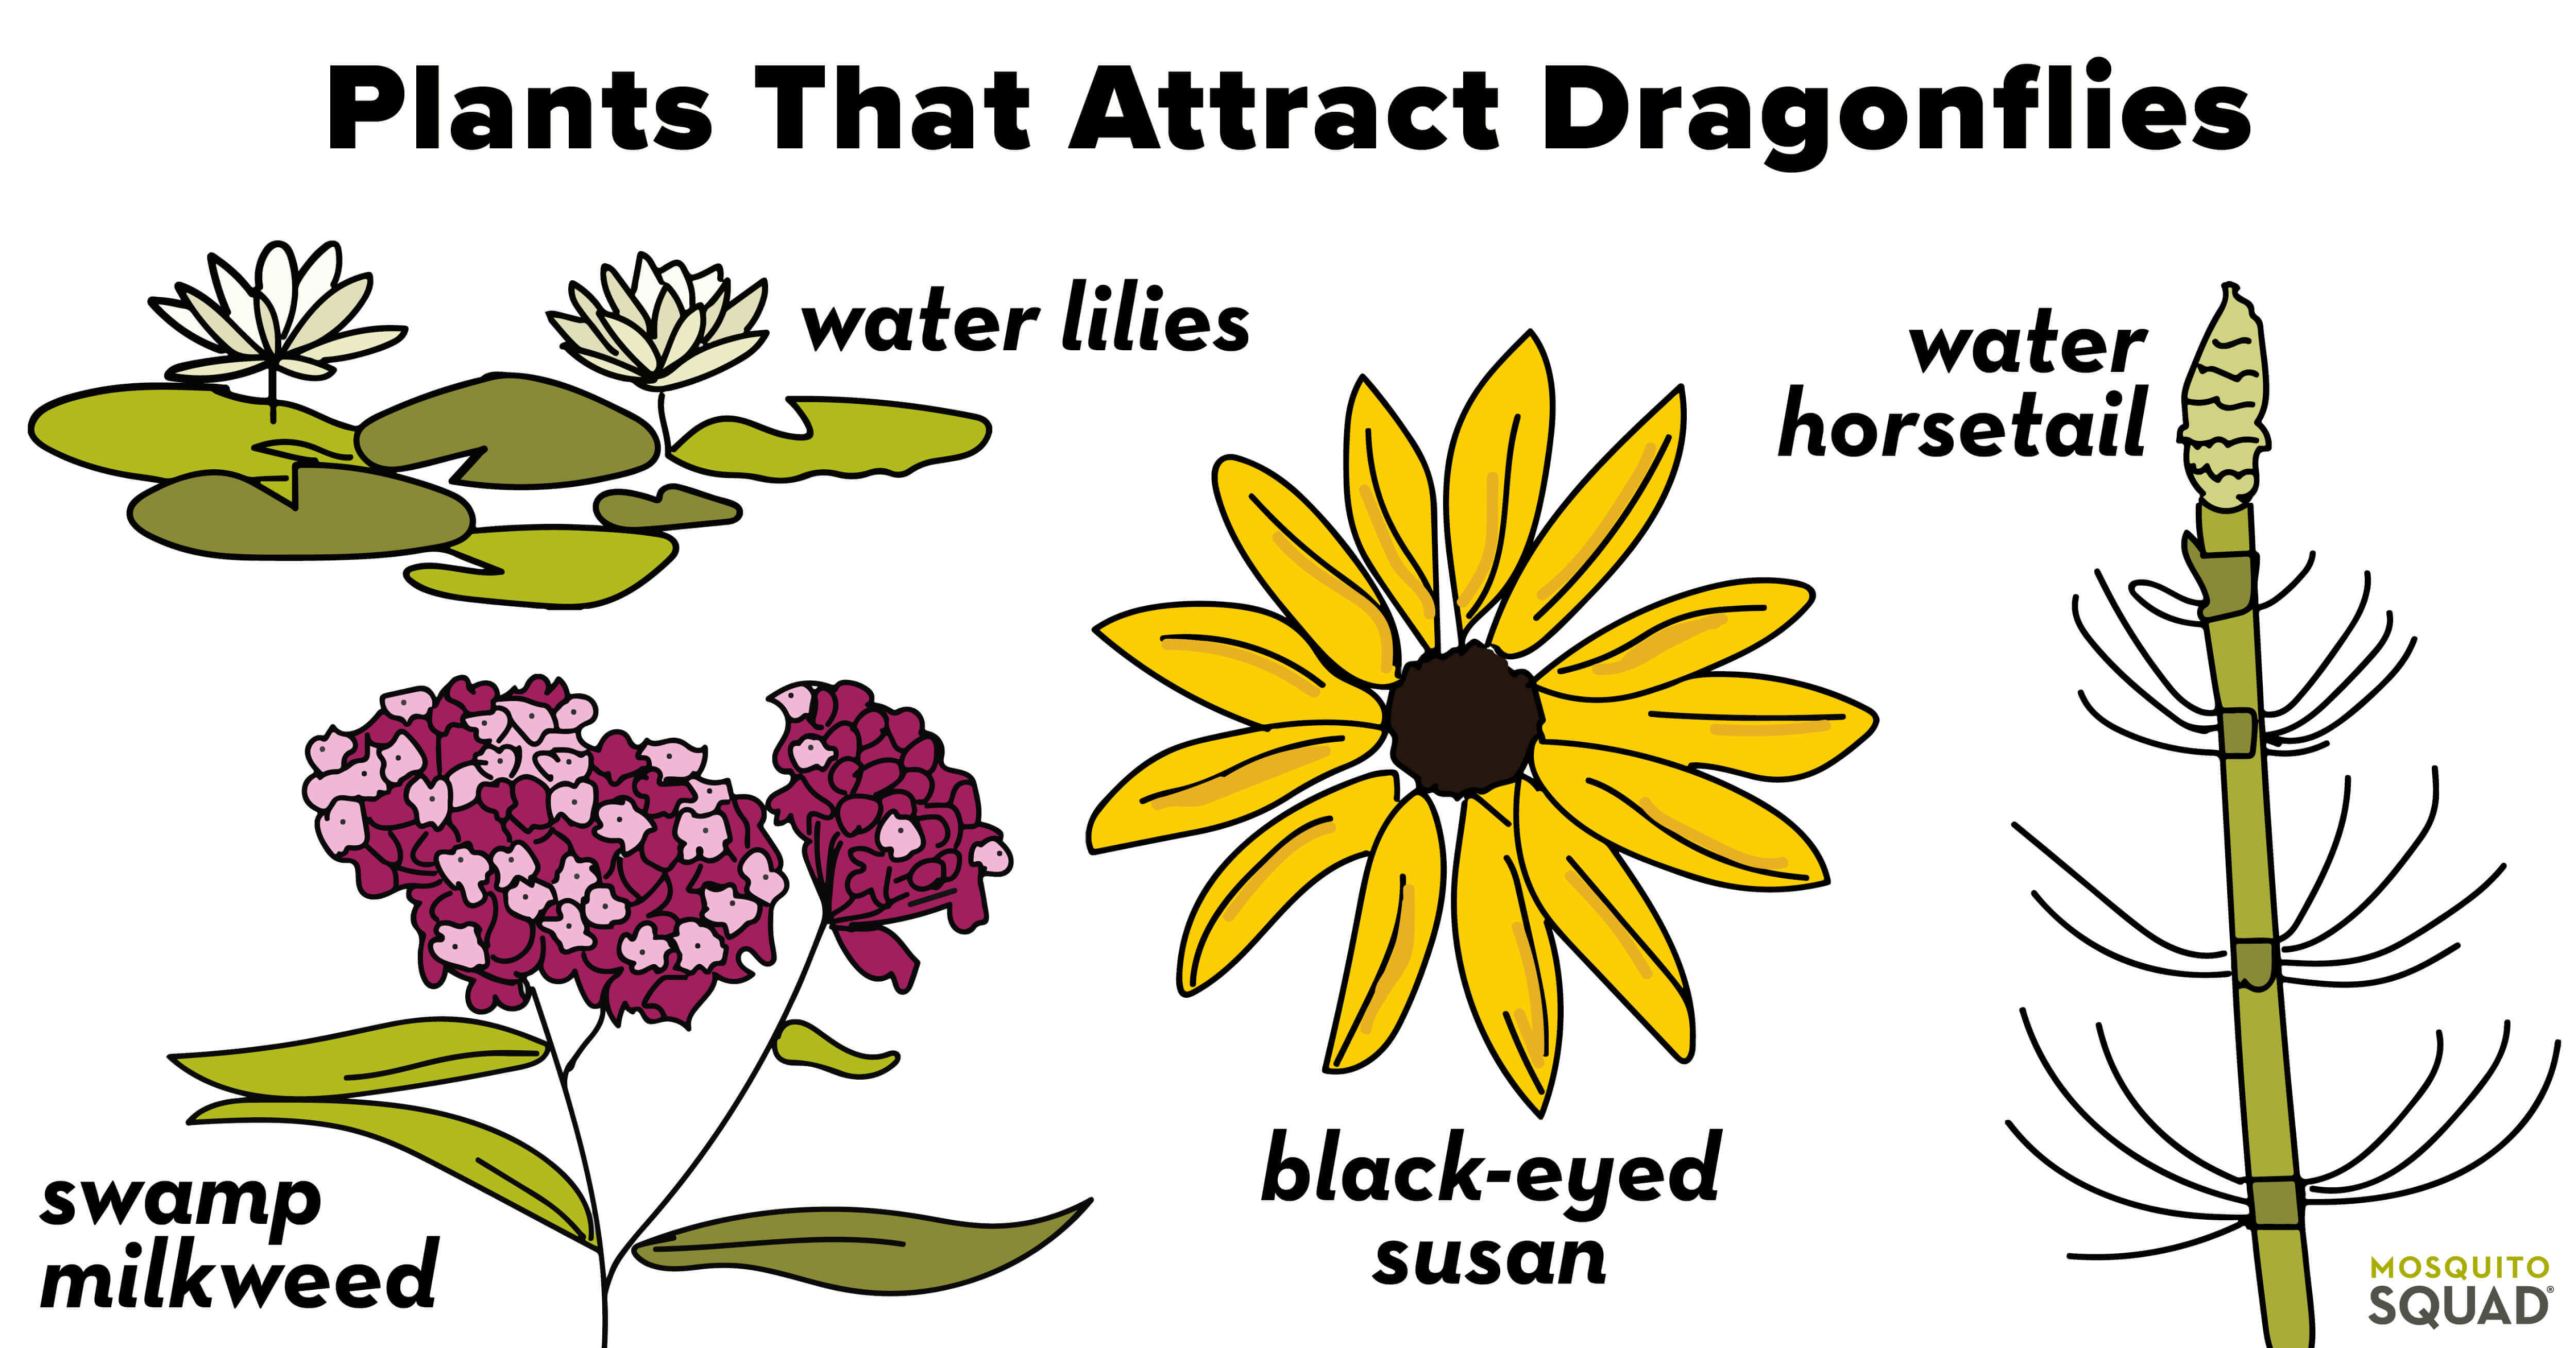 Plants that attract dragonflies